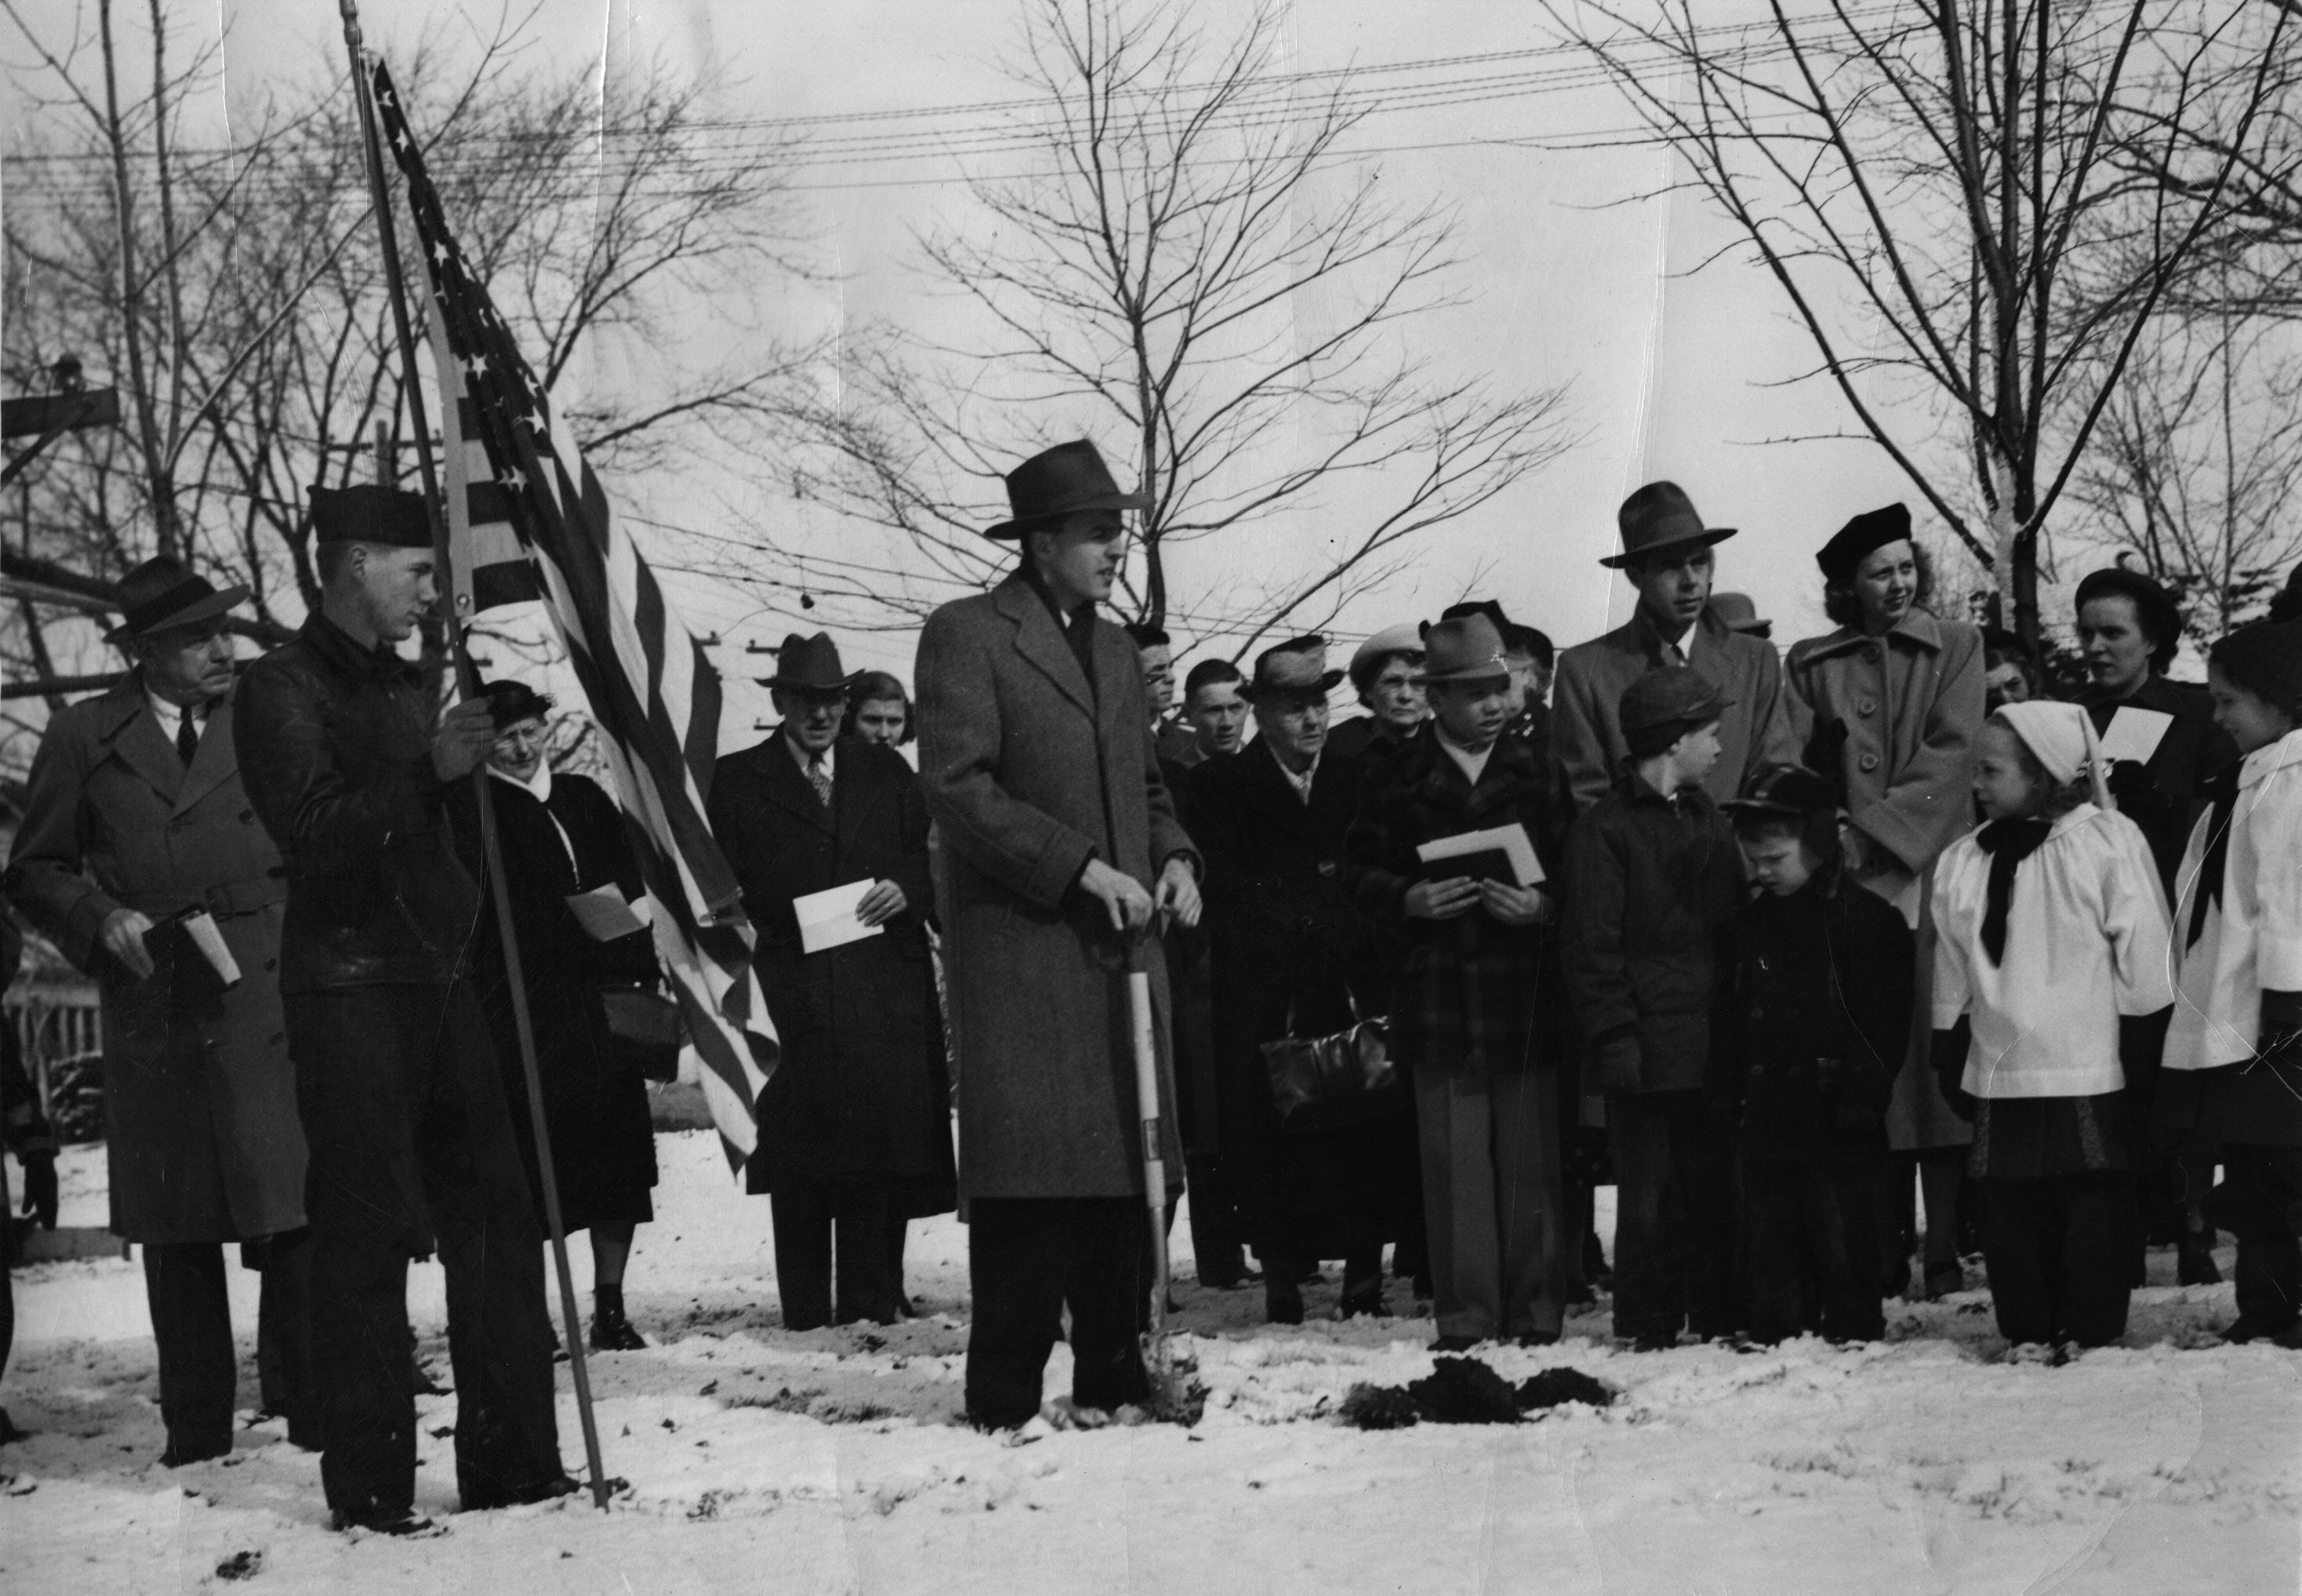 Salem Parish Hall 1950 Grounbreaking